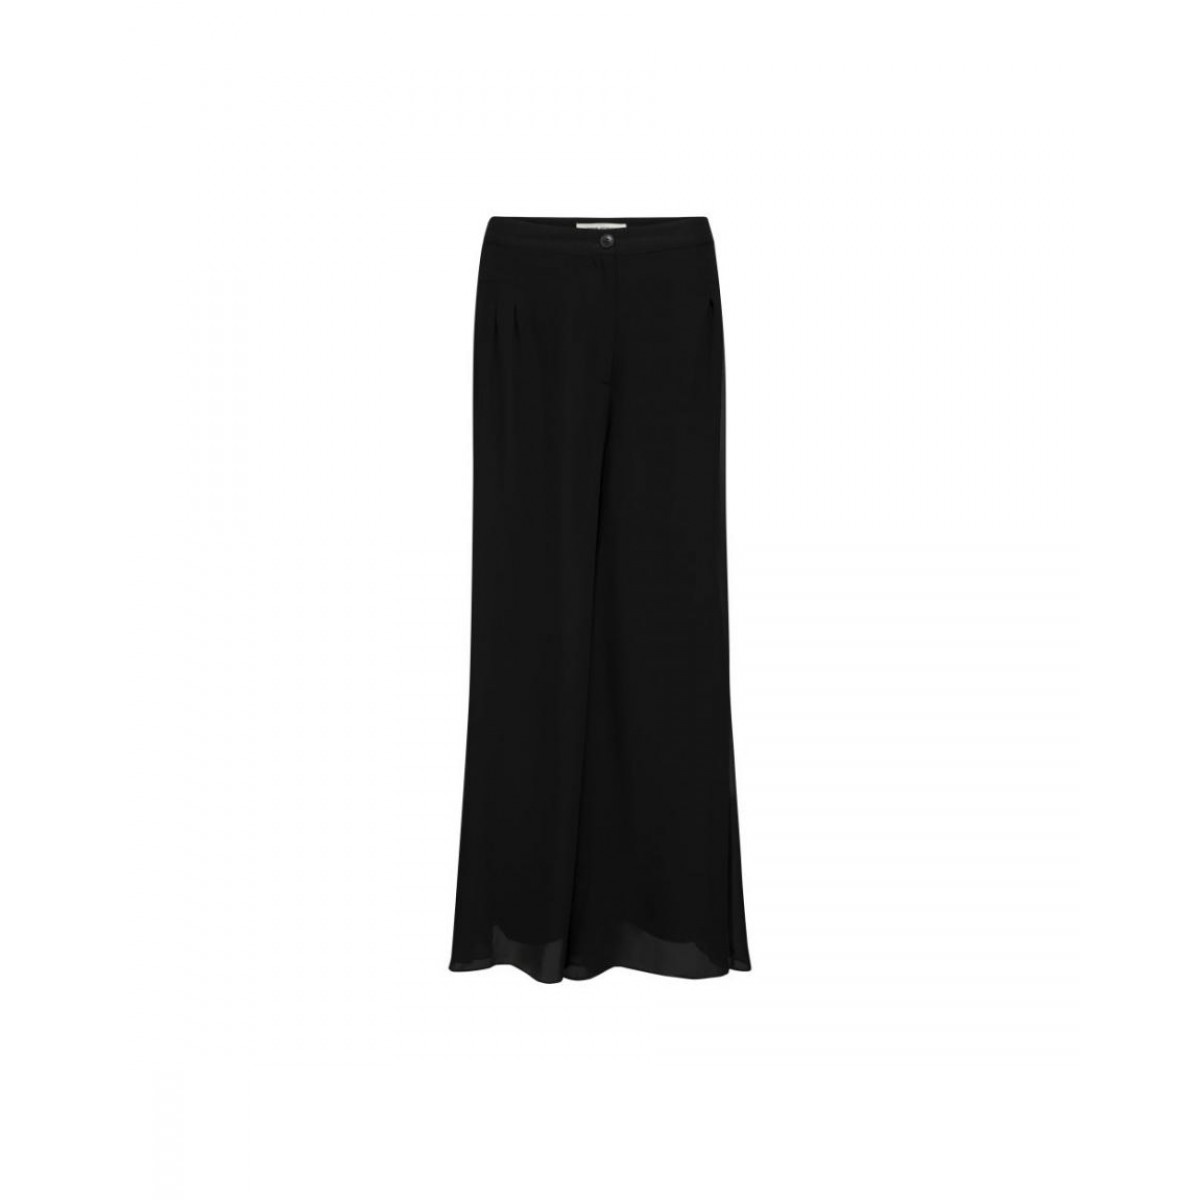 Sofie Schnoor S164205 pants Loose Fit Black-35